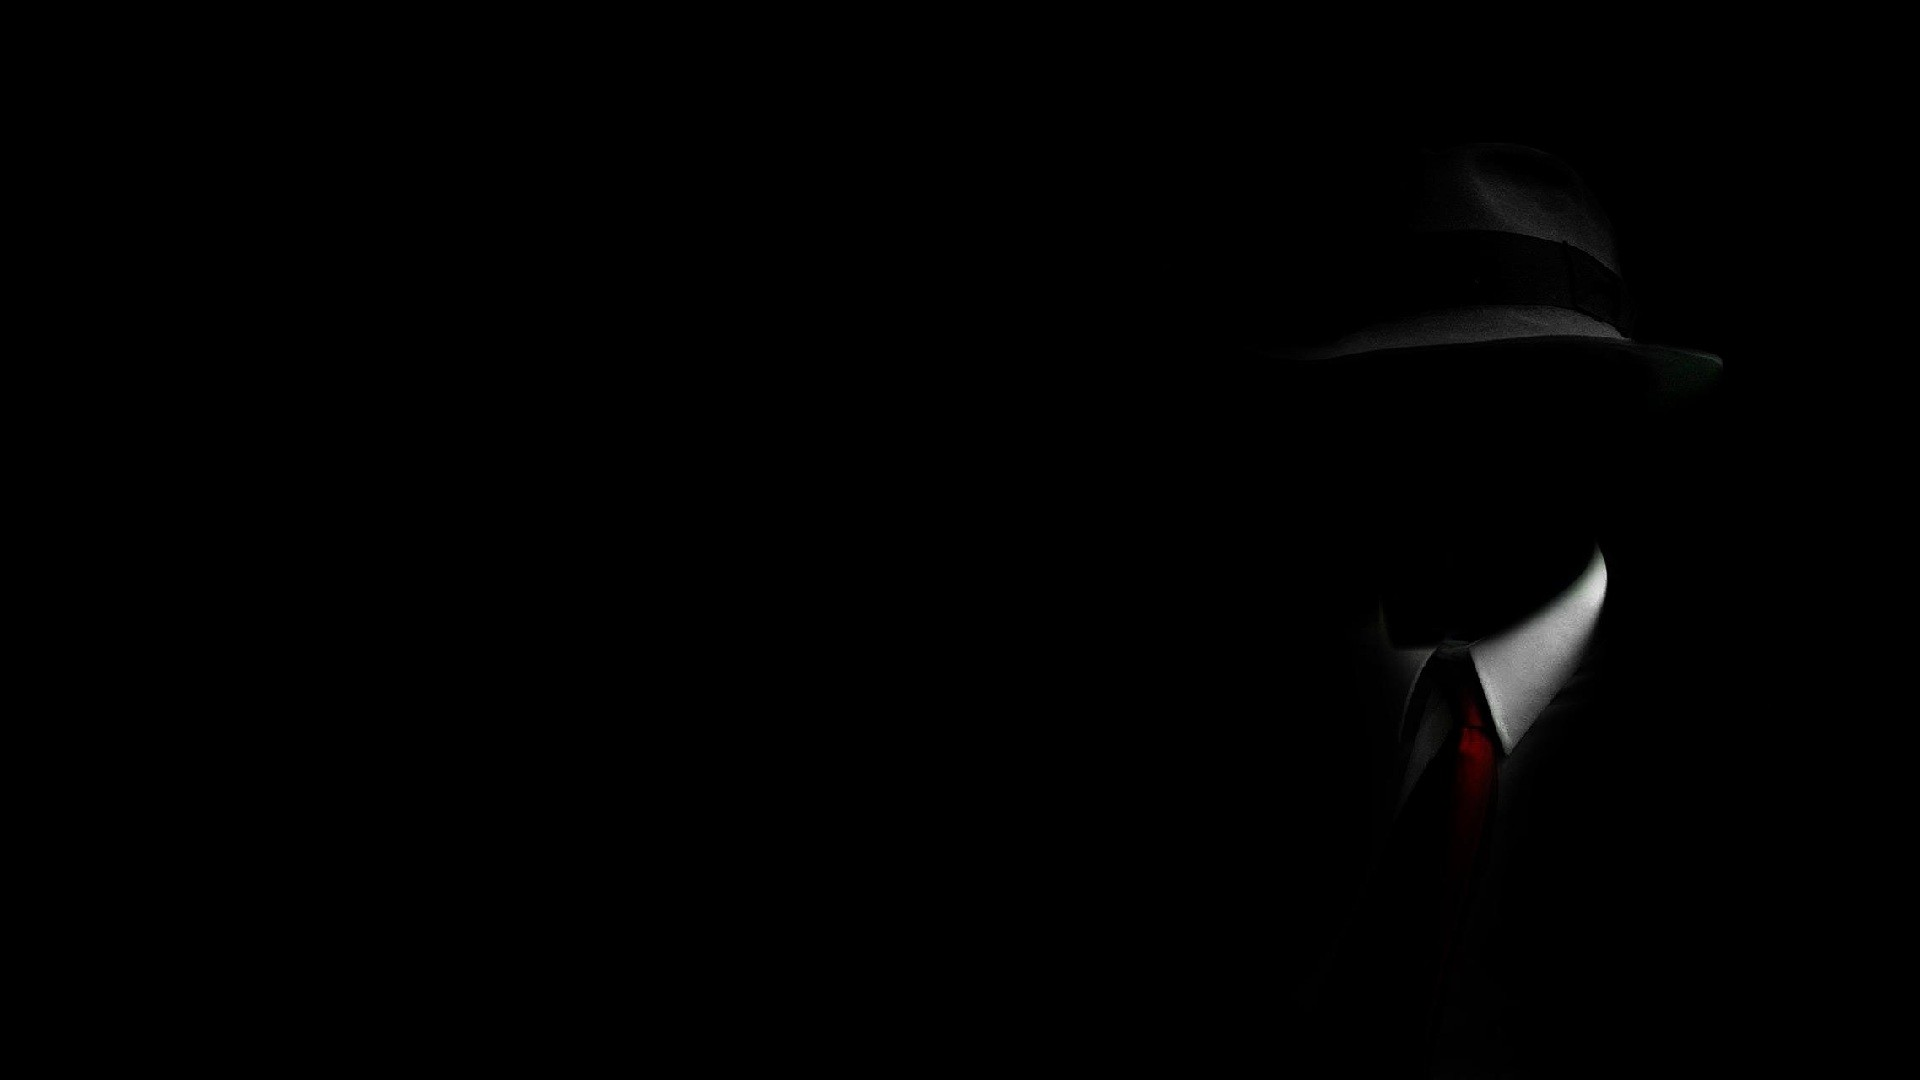 Dark hd wallpapers 1920x1080 73 images - Anonymous wallpaper full hd ...